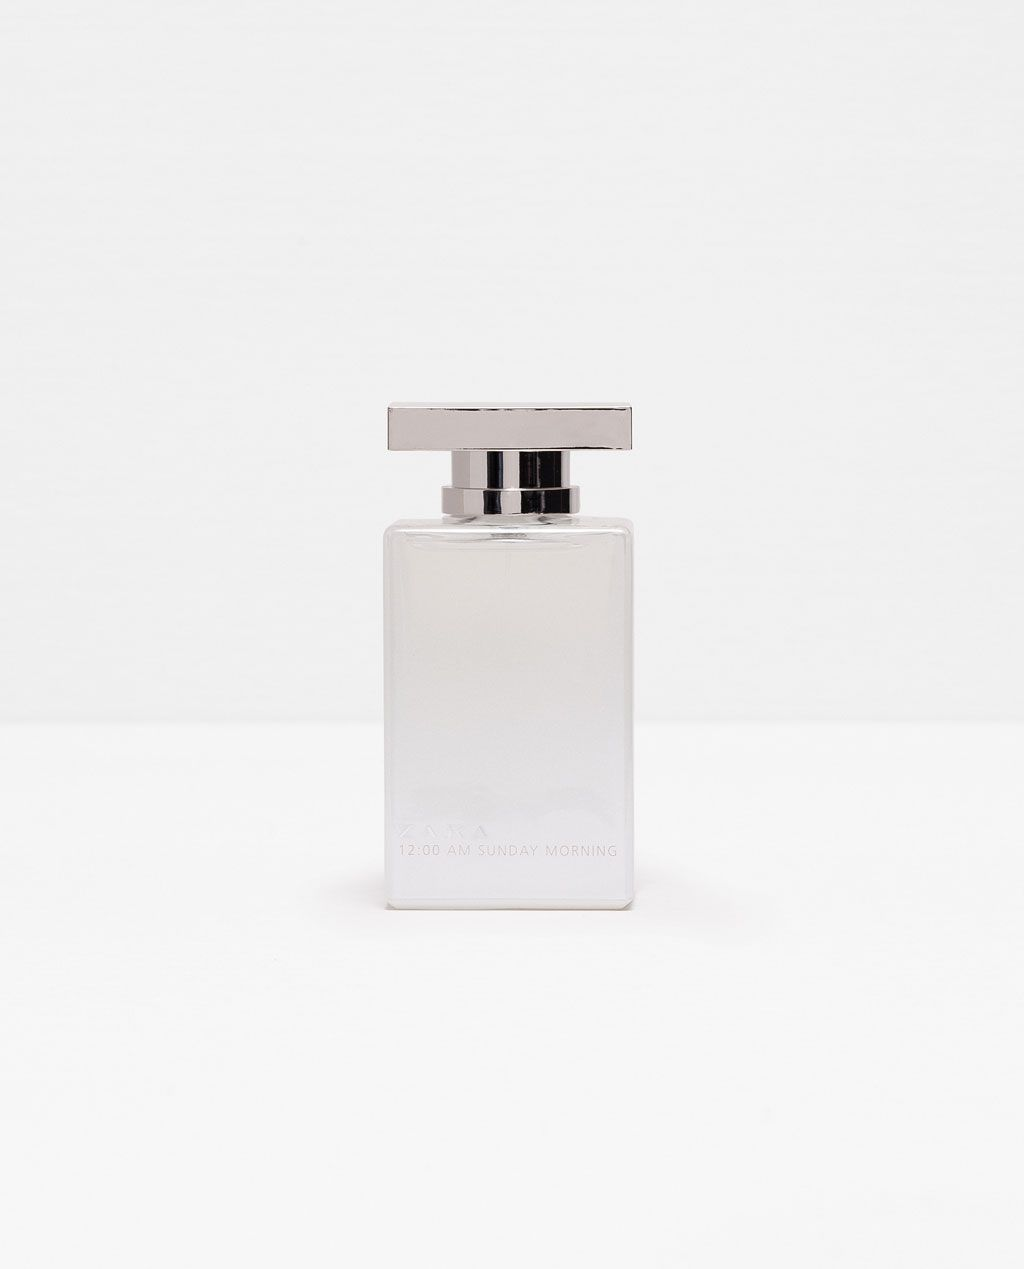 ZARA 12:00 AM SUNDAY MORNING EAU DE TOILETTE